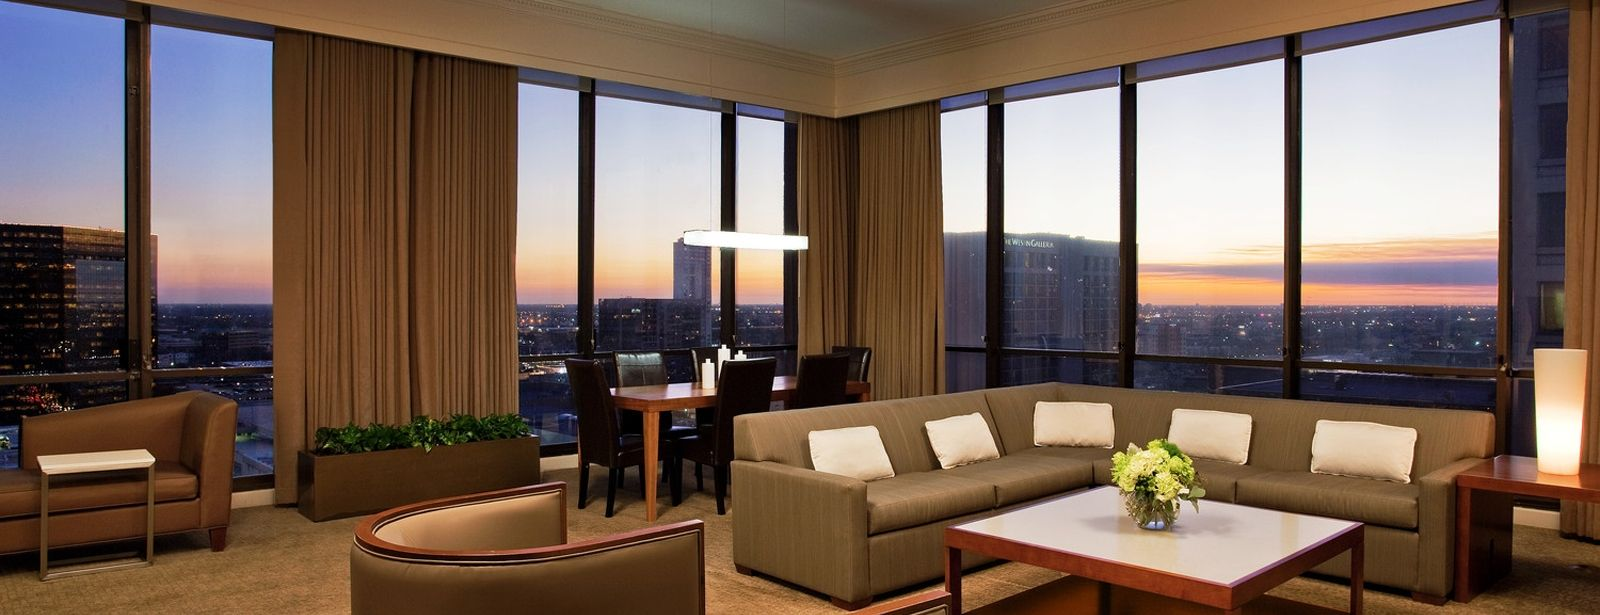 Hotel Suites in Houston - The Westin Oaks Houston at the Galleria